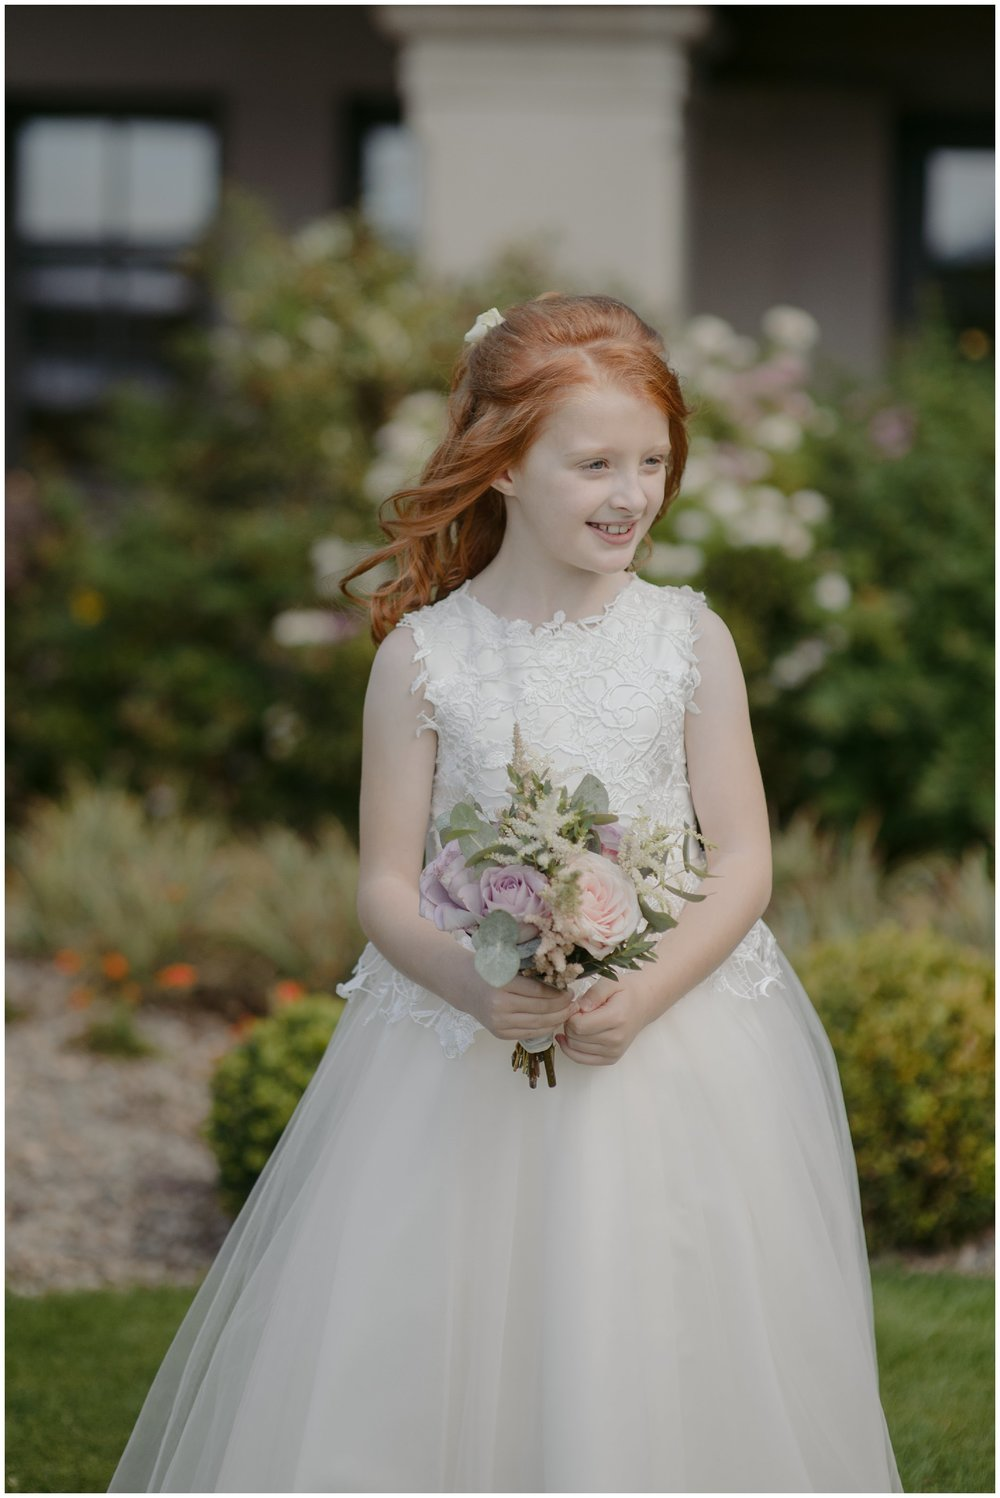 louise_keith_lough_erne_wedding_jude_browne_photography_0042.jpg